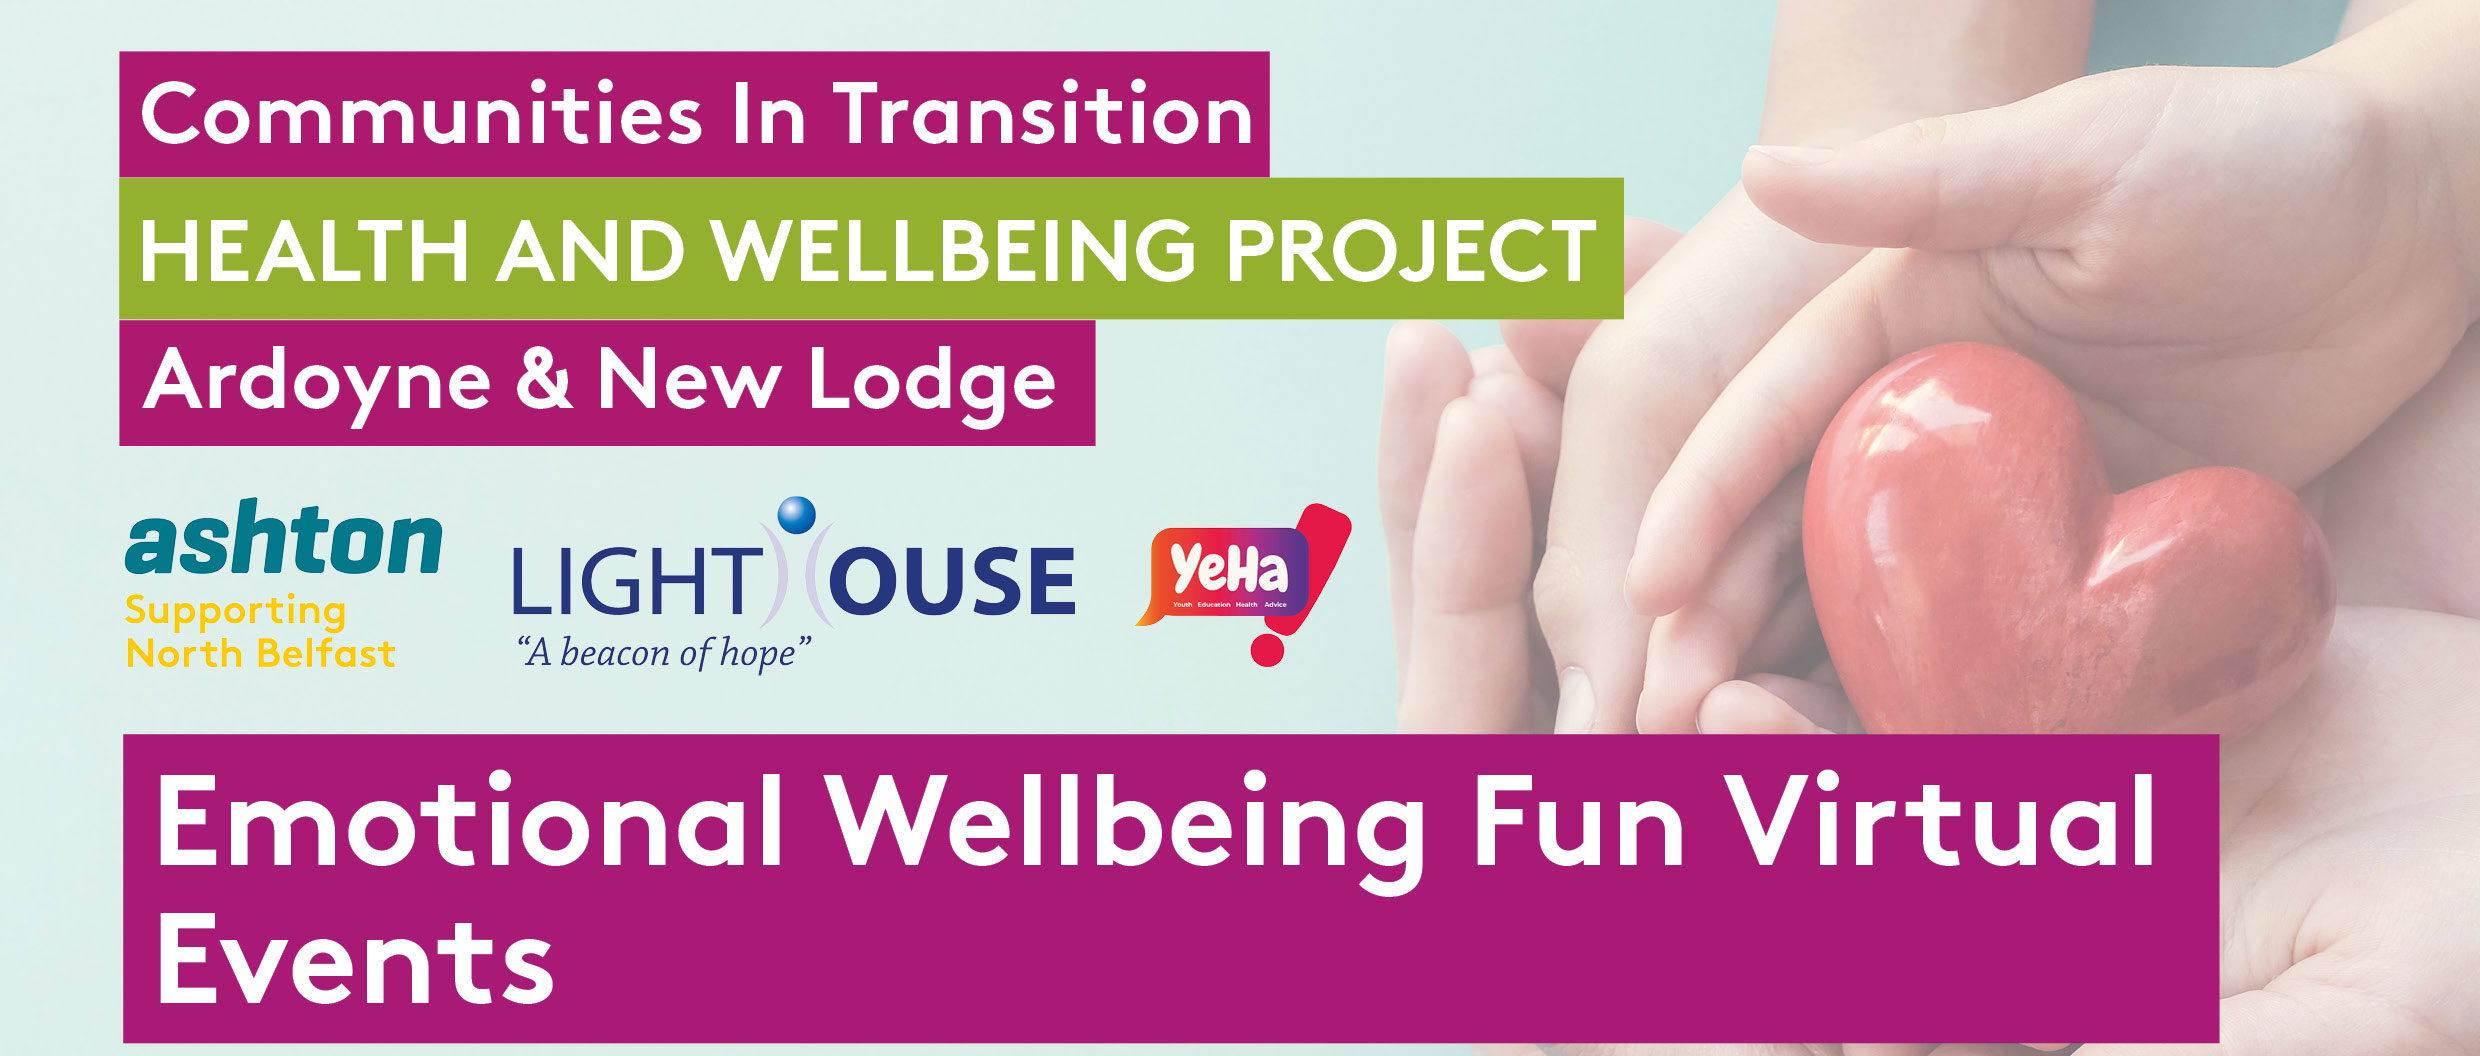 Emotional Wellbeing Fun Virtual Events